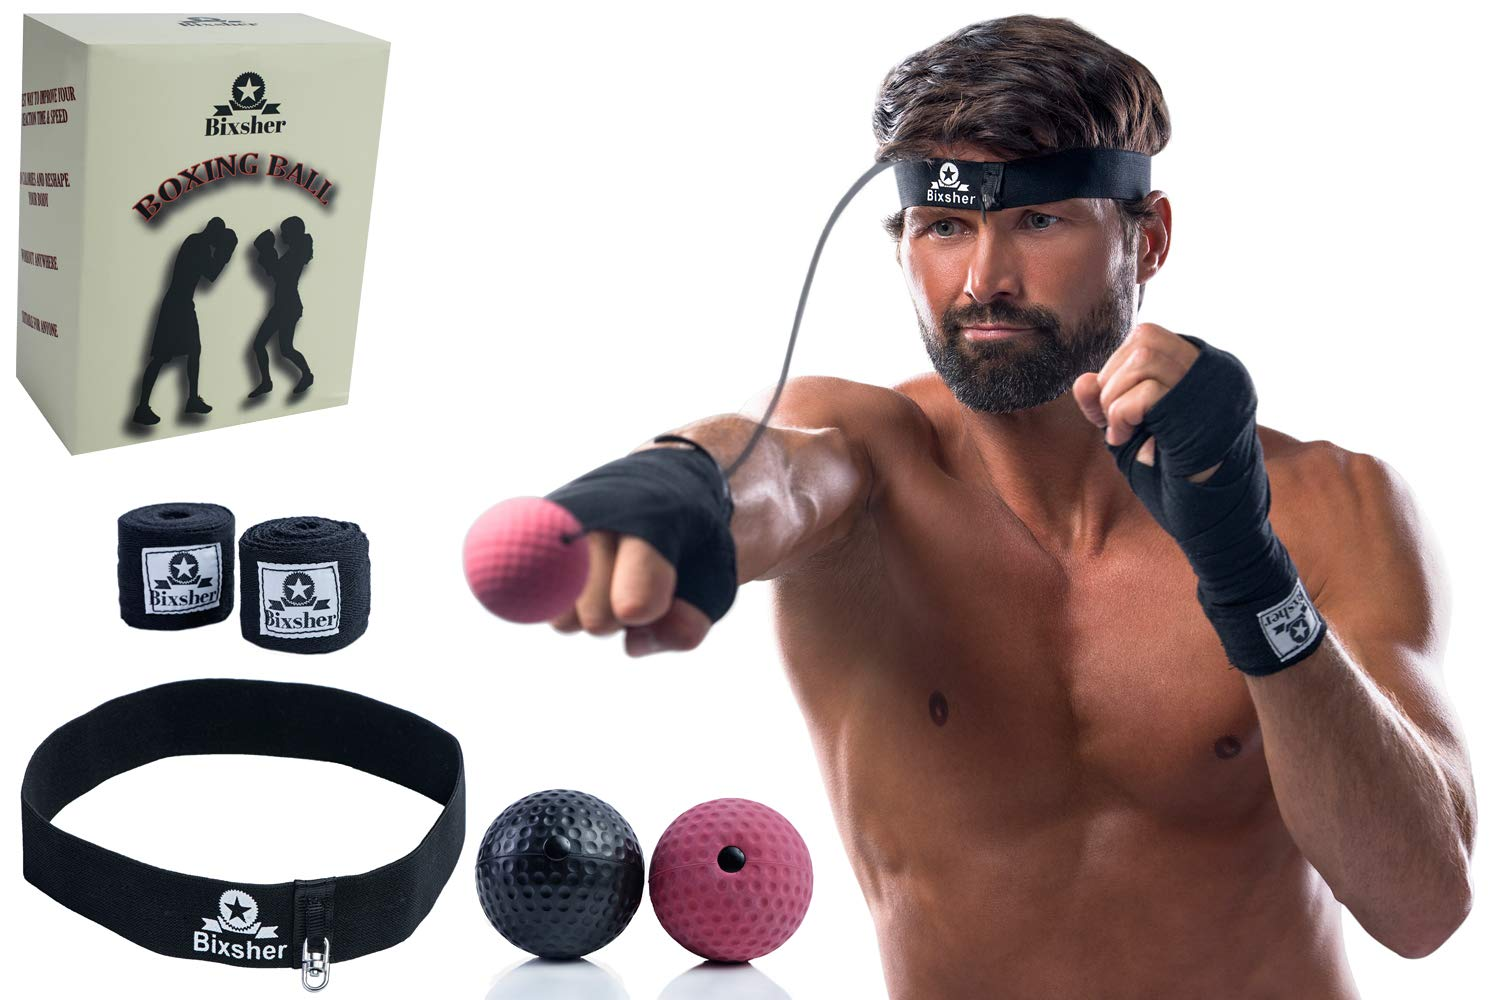 Bixsher  Boxing Ball on String, Boxing Trainer Headband, Boxing Reflex Ball & Exercise Equipment Kit to Improve Hand Eye Coordination, Headbands for Women Men and Kids with Travel Bag